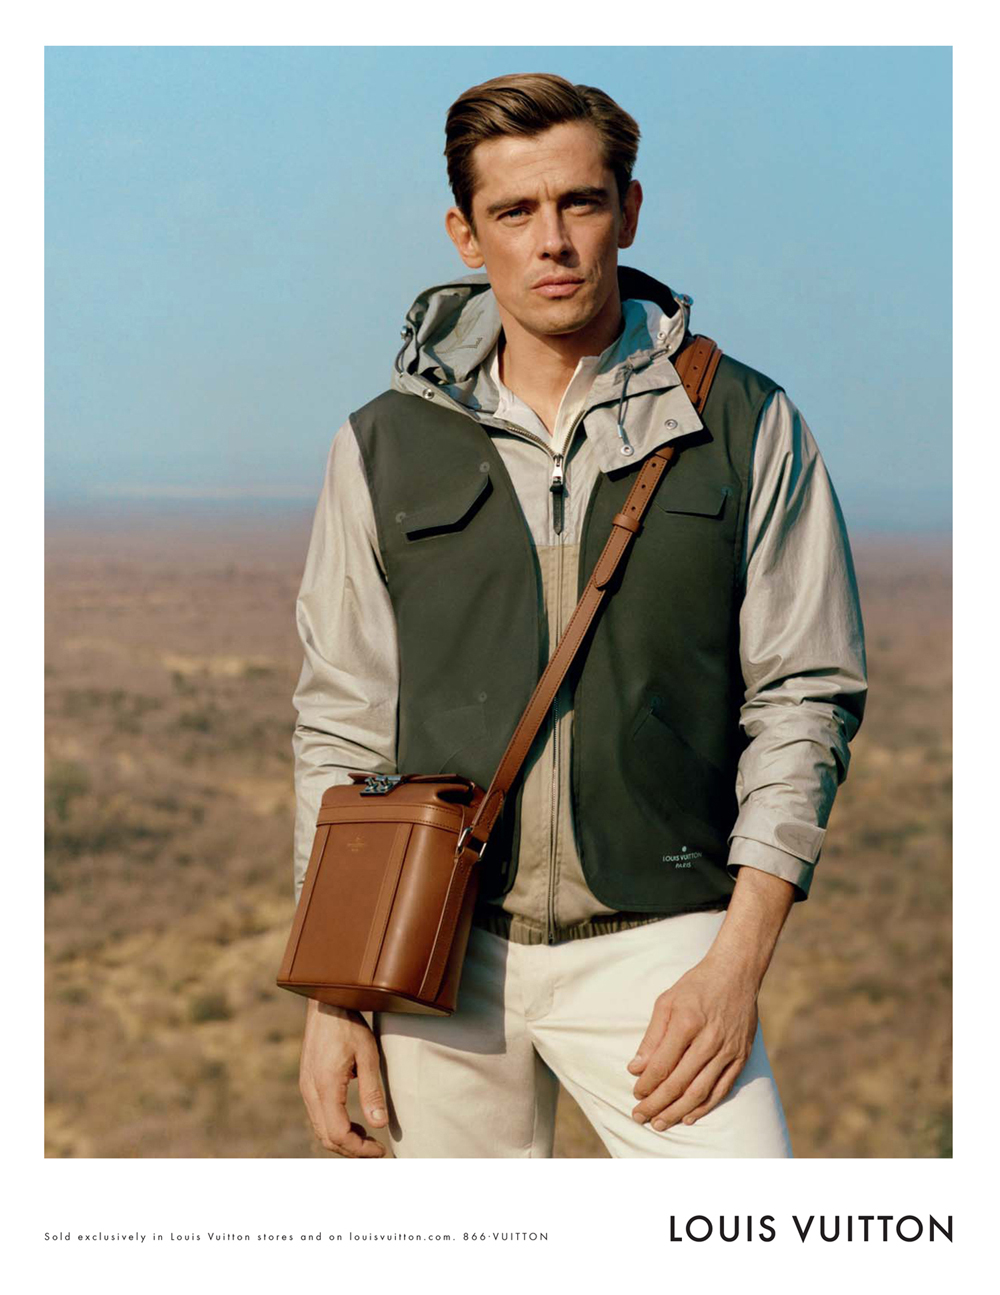 Magnus-Naddermier-Louis-Vuitton-Homme-SS12-SP-Photo-Alasdair-McLellan-01.jpg